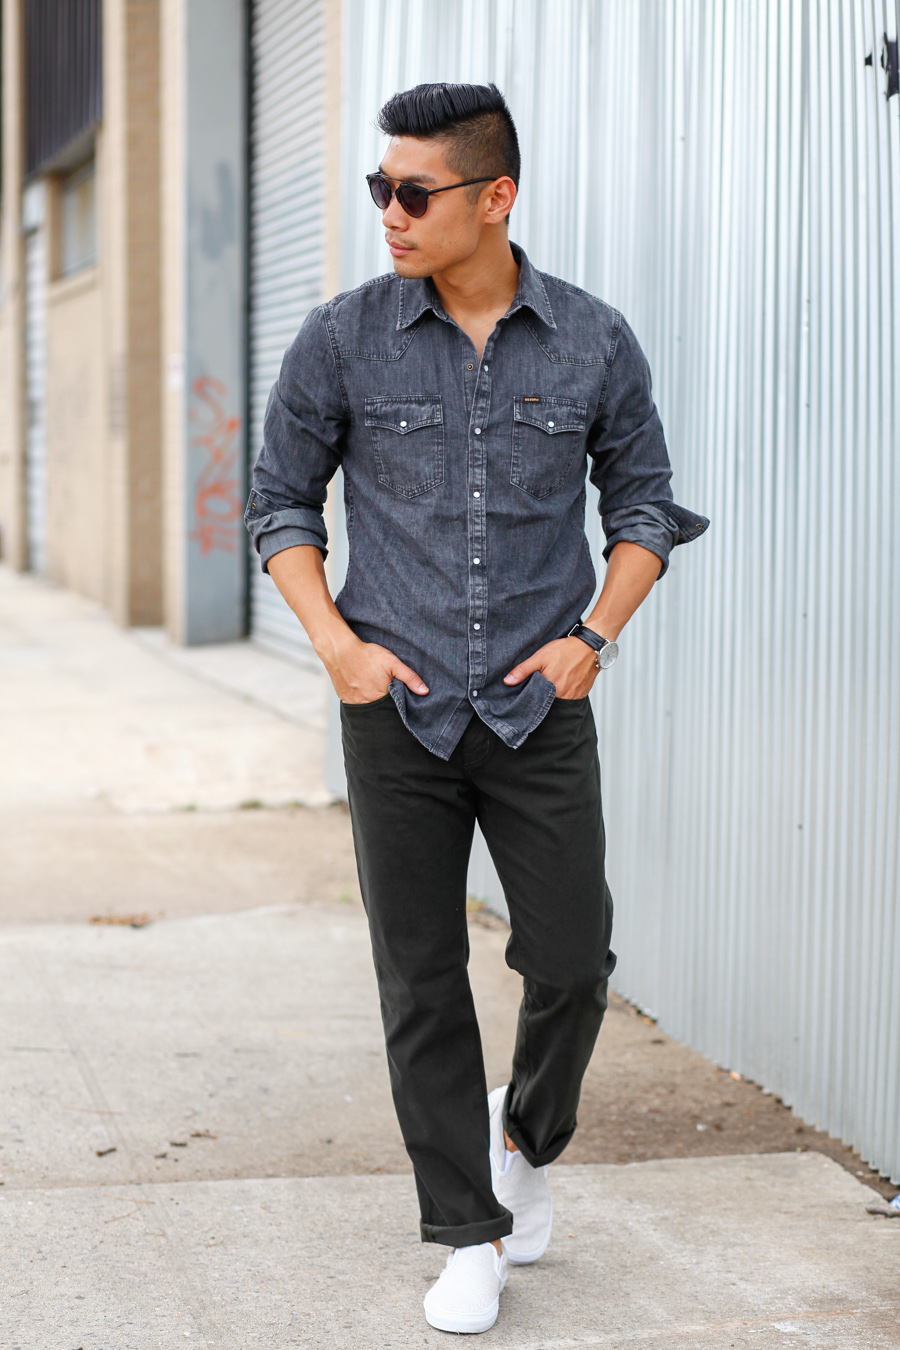 Levitate Style, Menswear, Weekend Casual Style, Big Star Denim Chambray, Vans